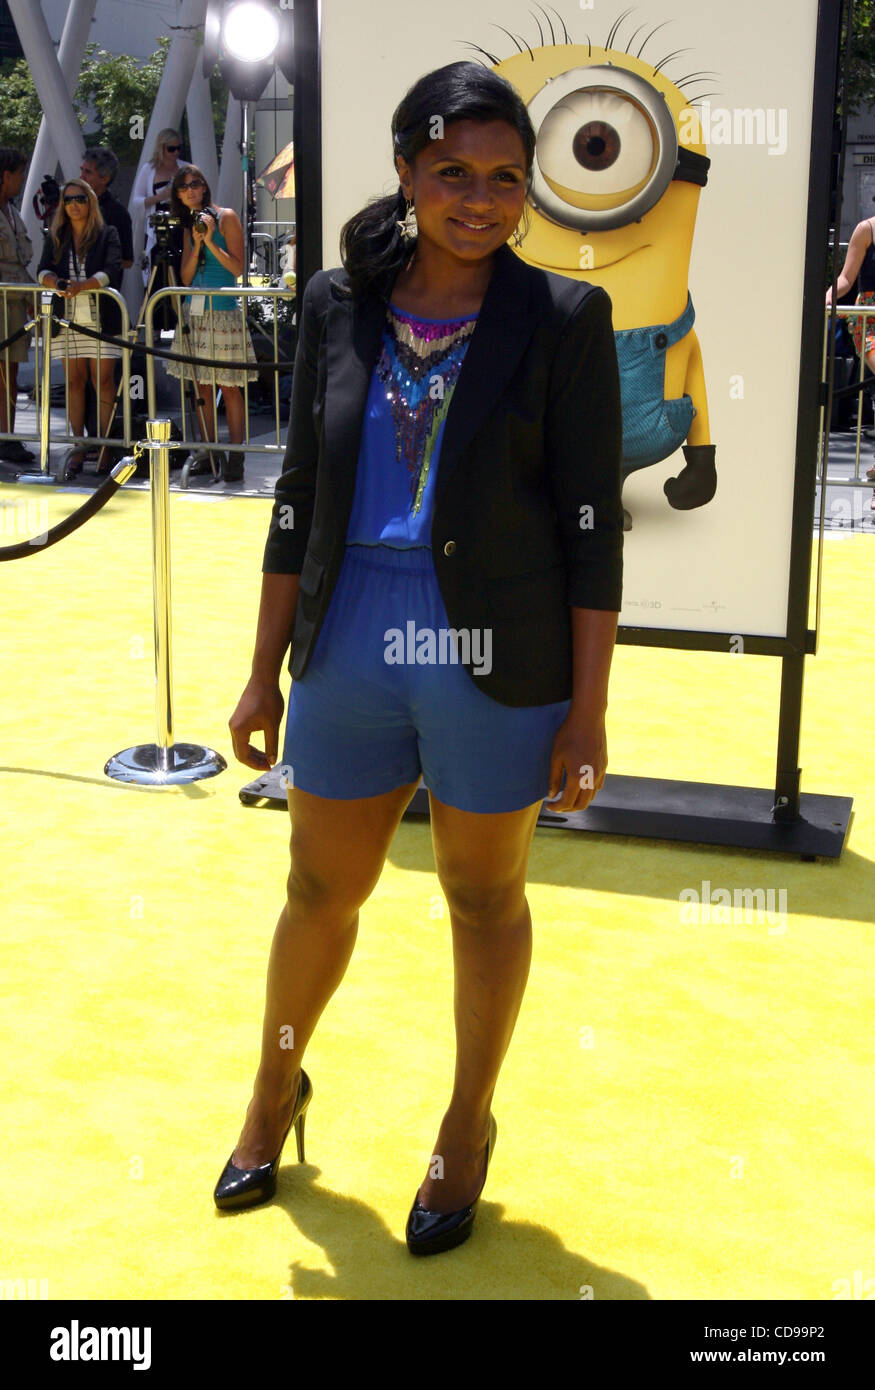 Jun 27 2010 Los Angeles California U S Actress Mindy Kaling Stock Photo Alamy